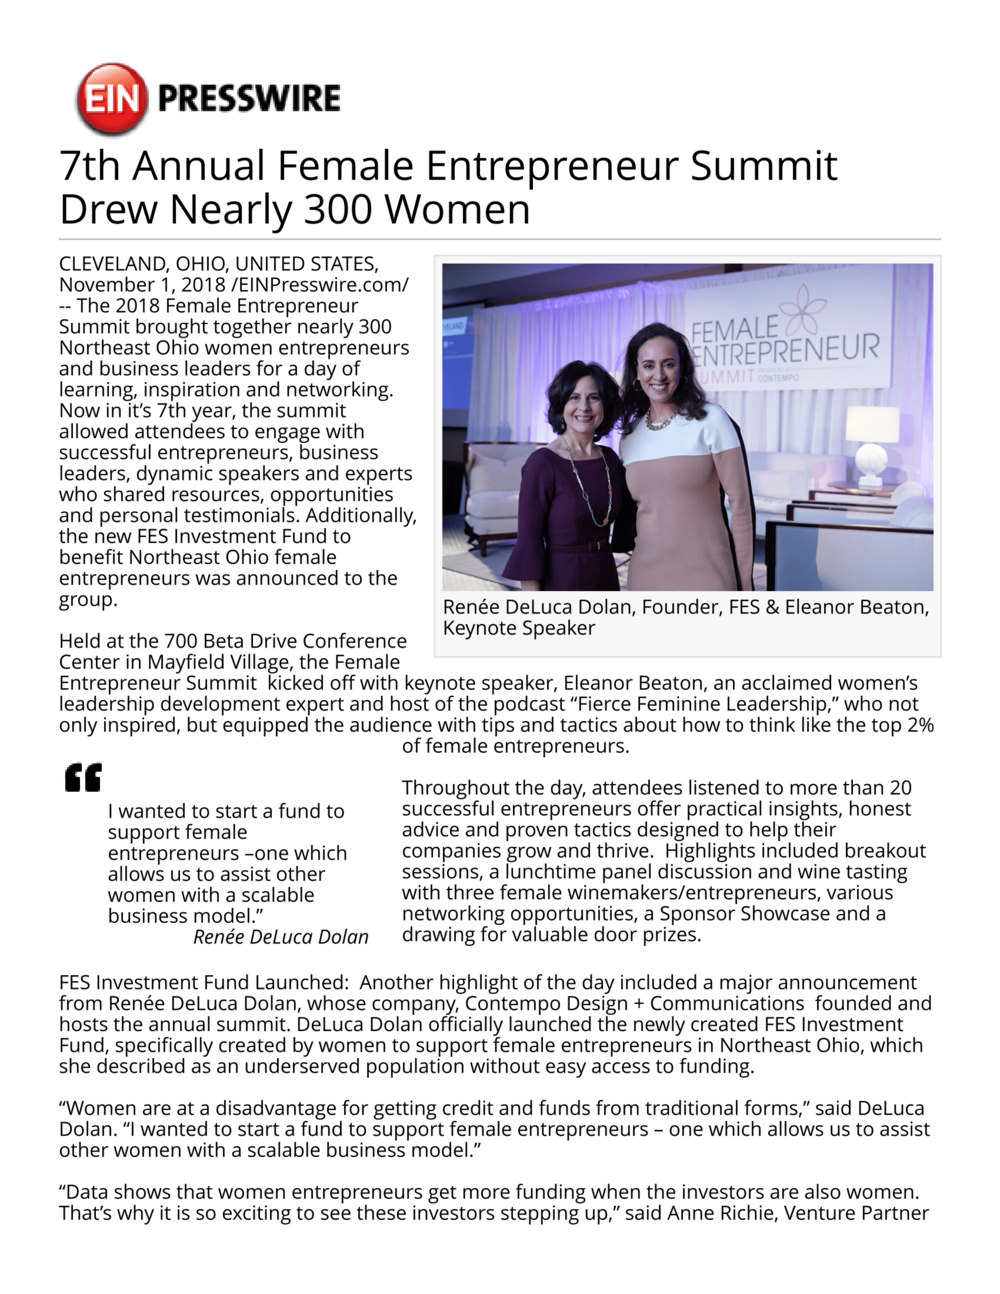 EINPresswire-466477316-7th-annual-female-entrepreneur-summit-drew-nearly-300-women-1.png